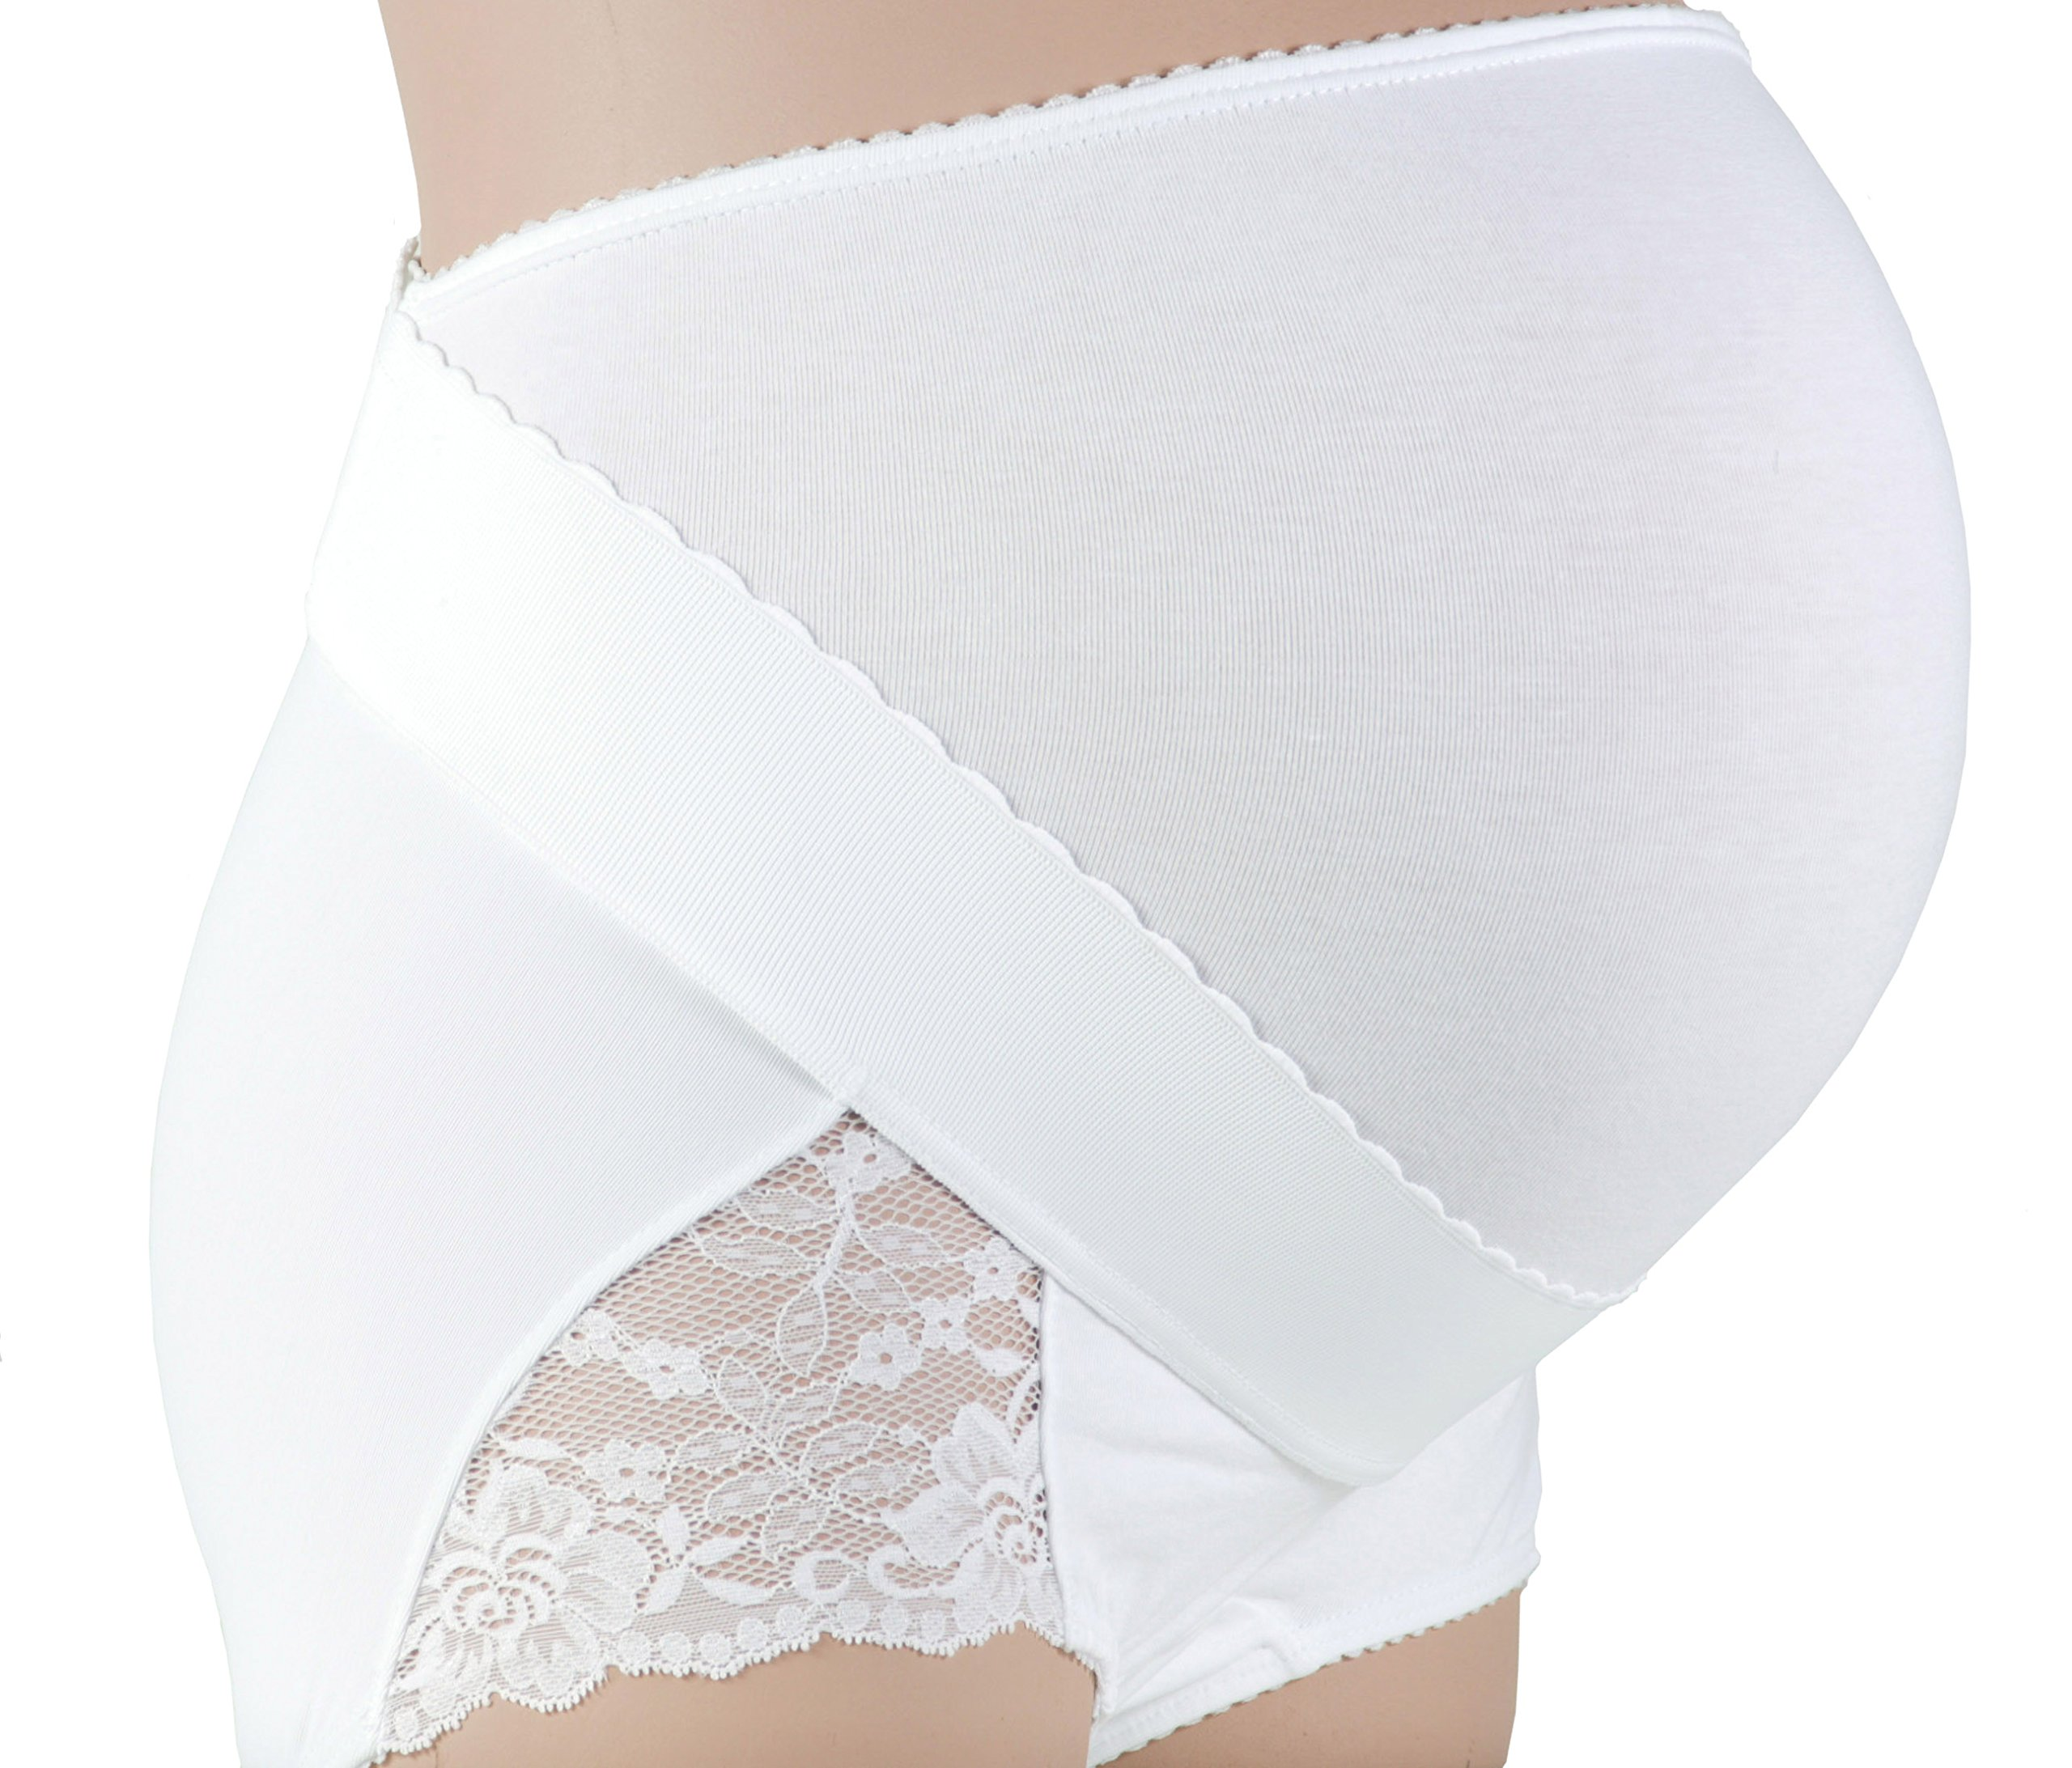 Gabrialla Maternity Support Girdle-Panty with Adjustable Band (light support), Large